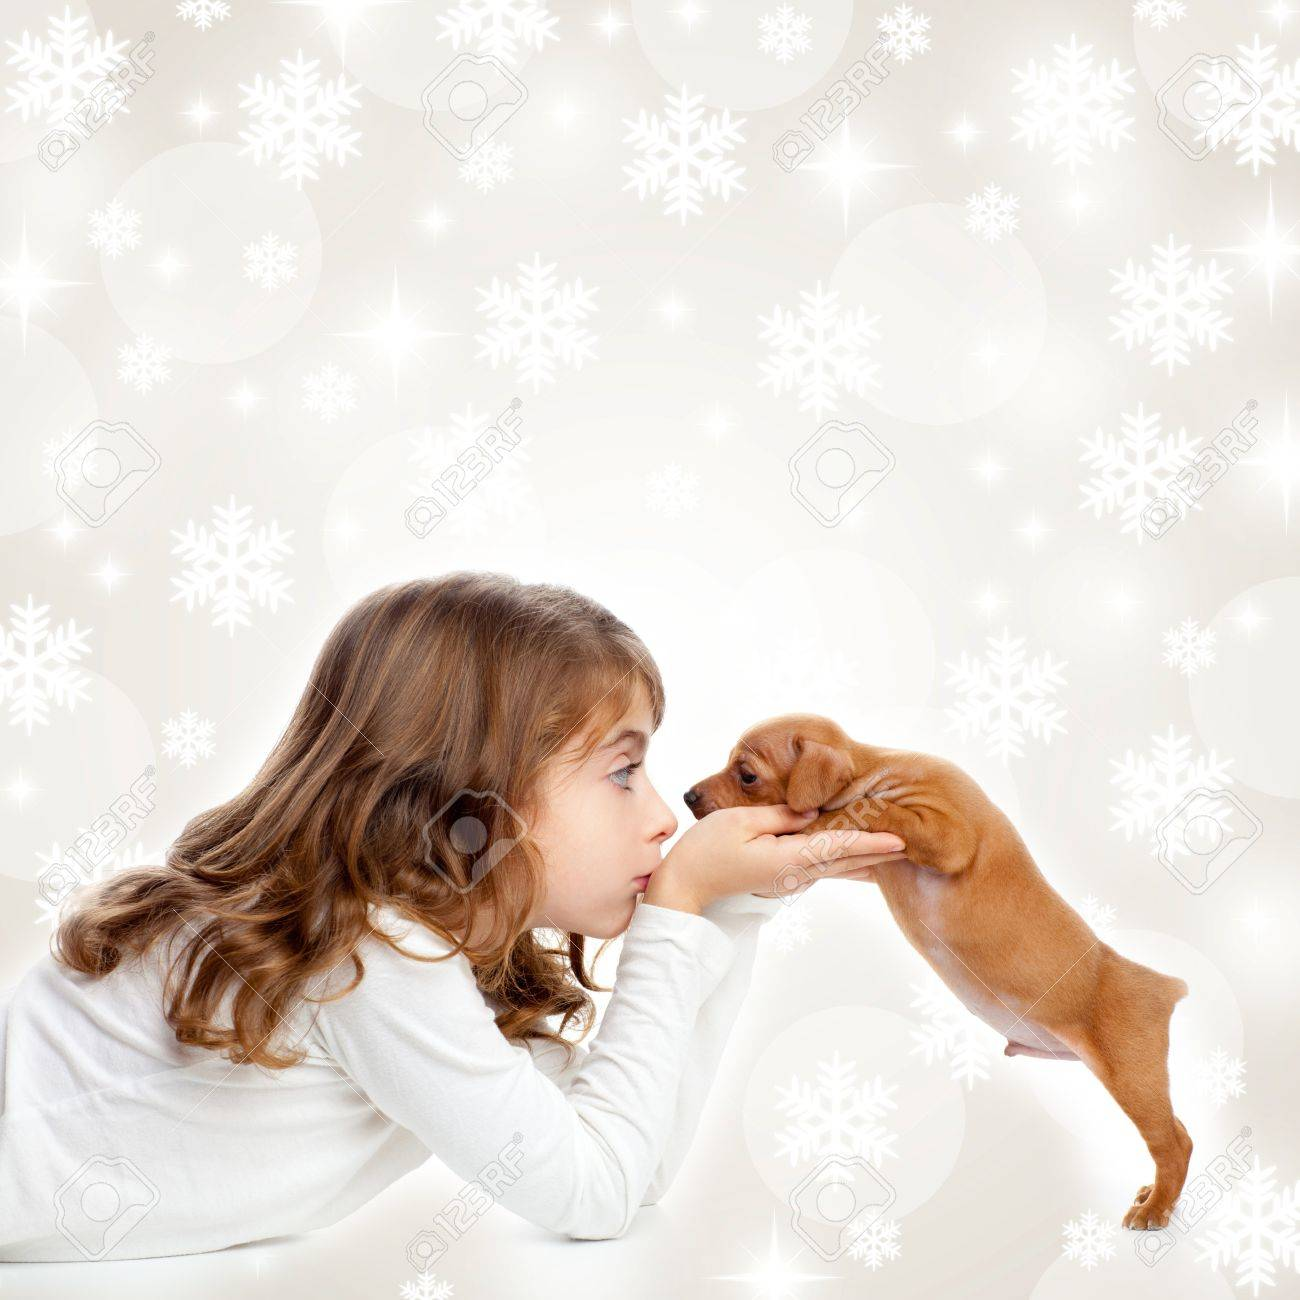 christmas snowflakes with children girl hugging a puppy brown dog Stock Photo - 15903112